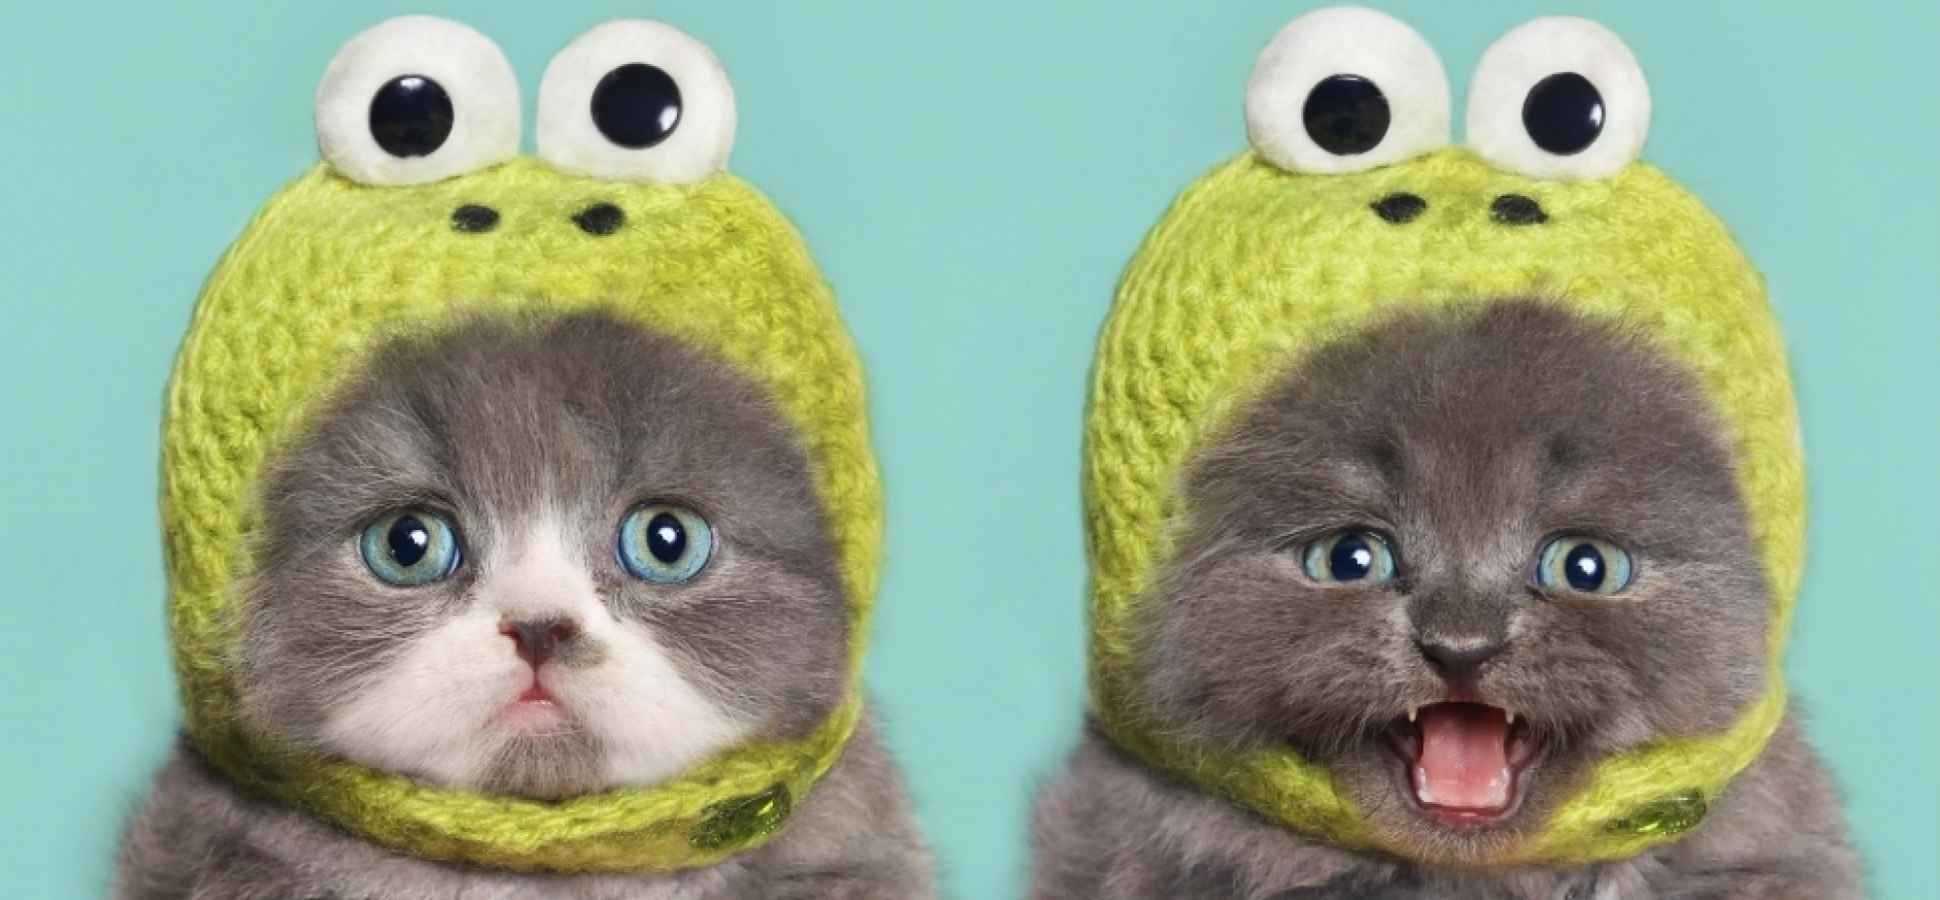 Science Says It's OK to Watch That Kitten Video at Work